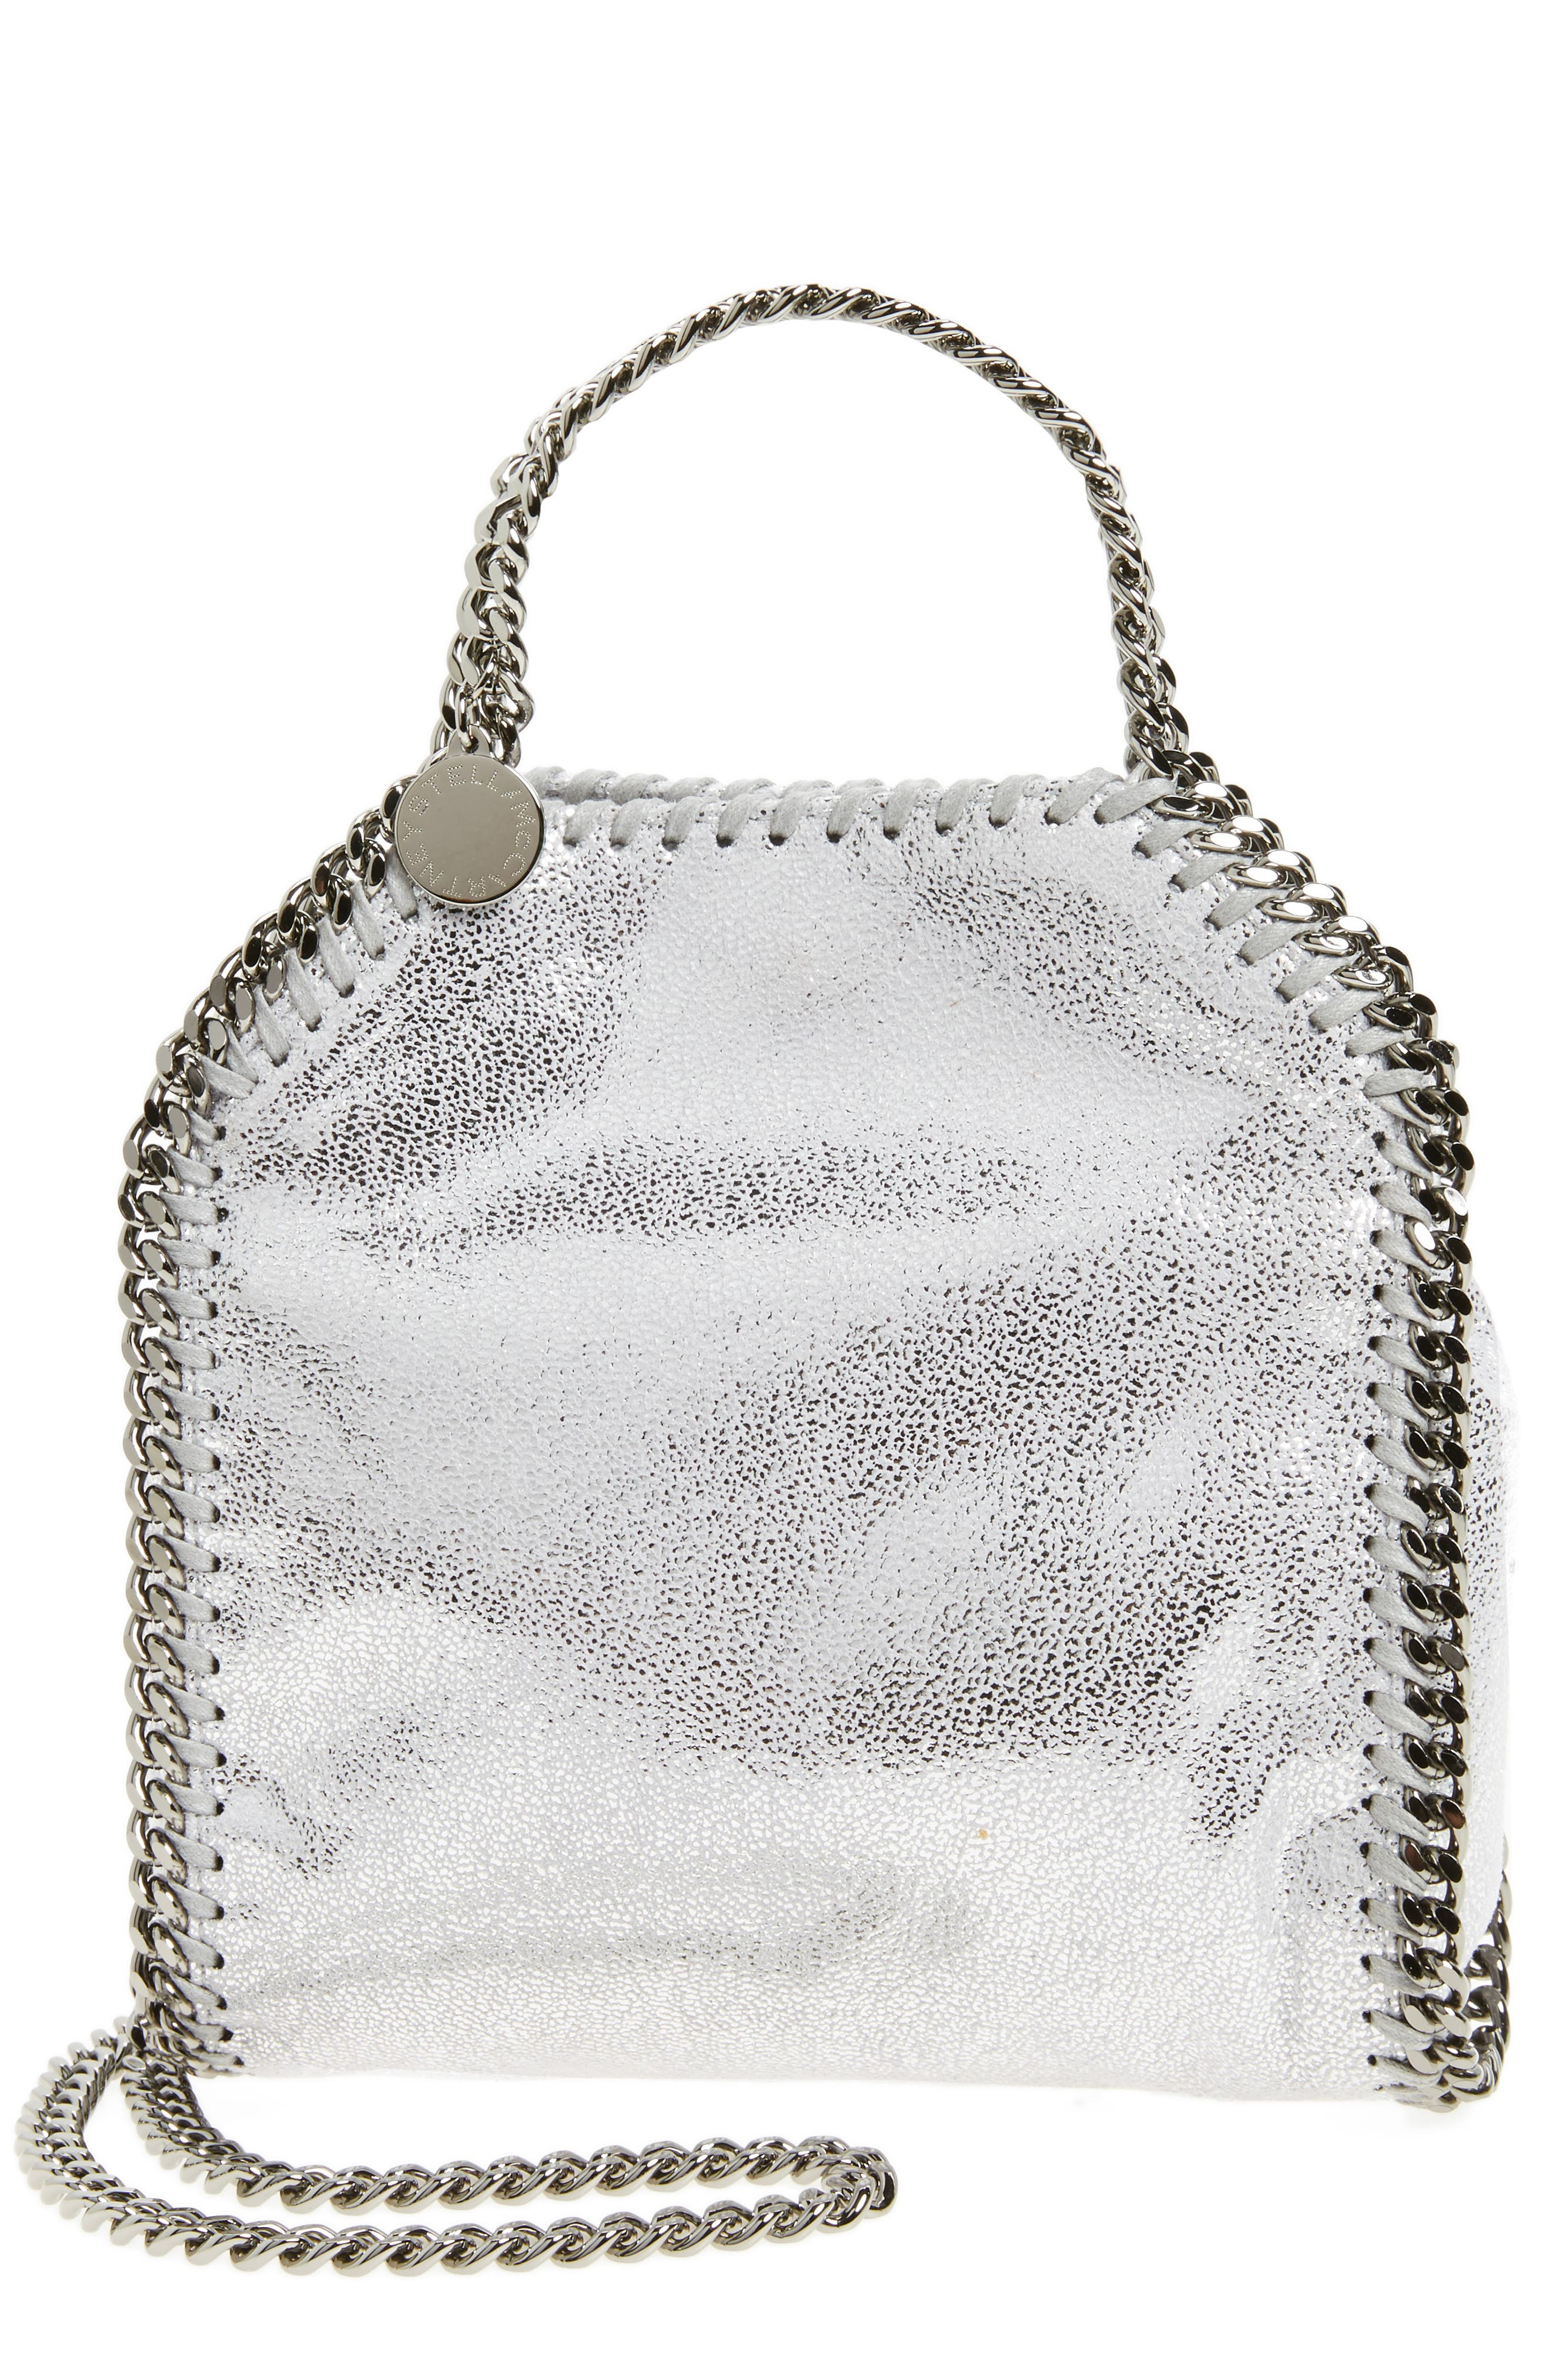 'Tiny Falabella' Metallic Faux Leather Crossbody Bag,                         Main,                         color, Silver